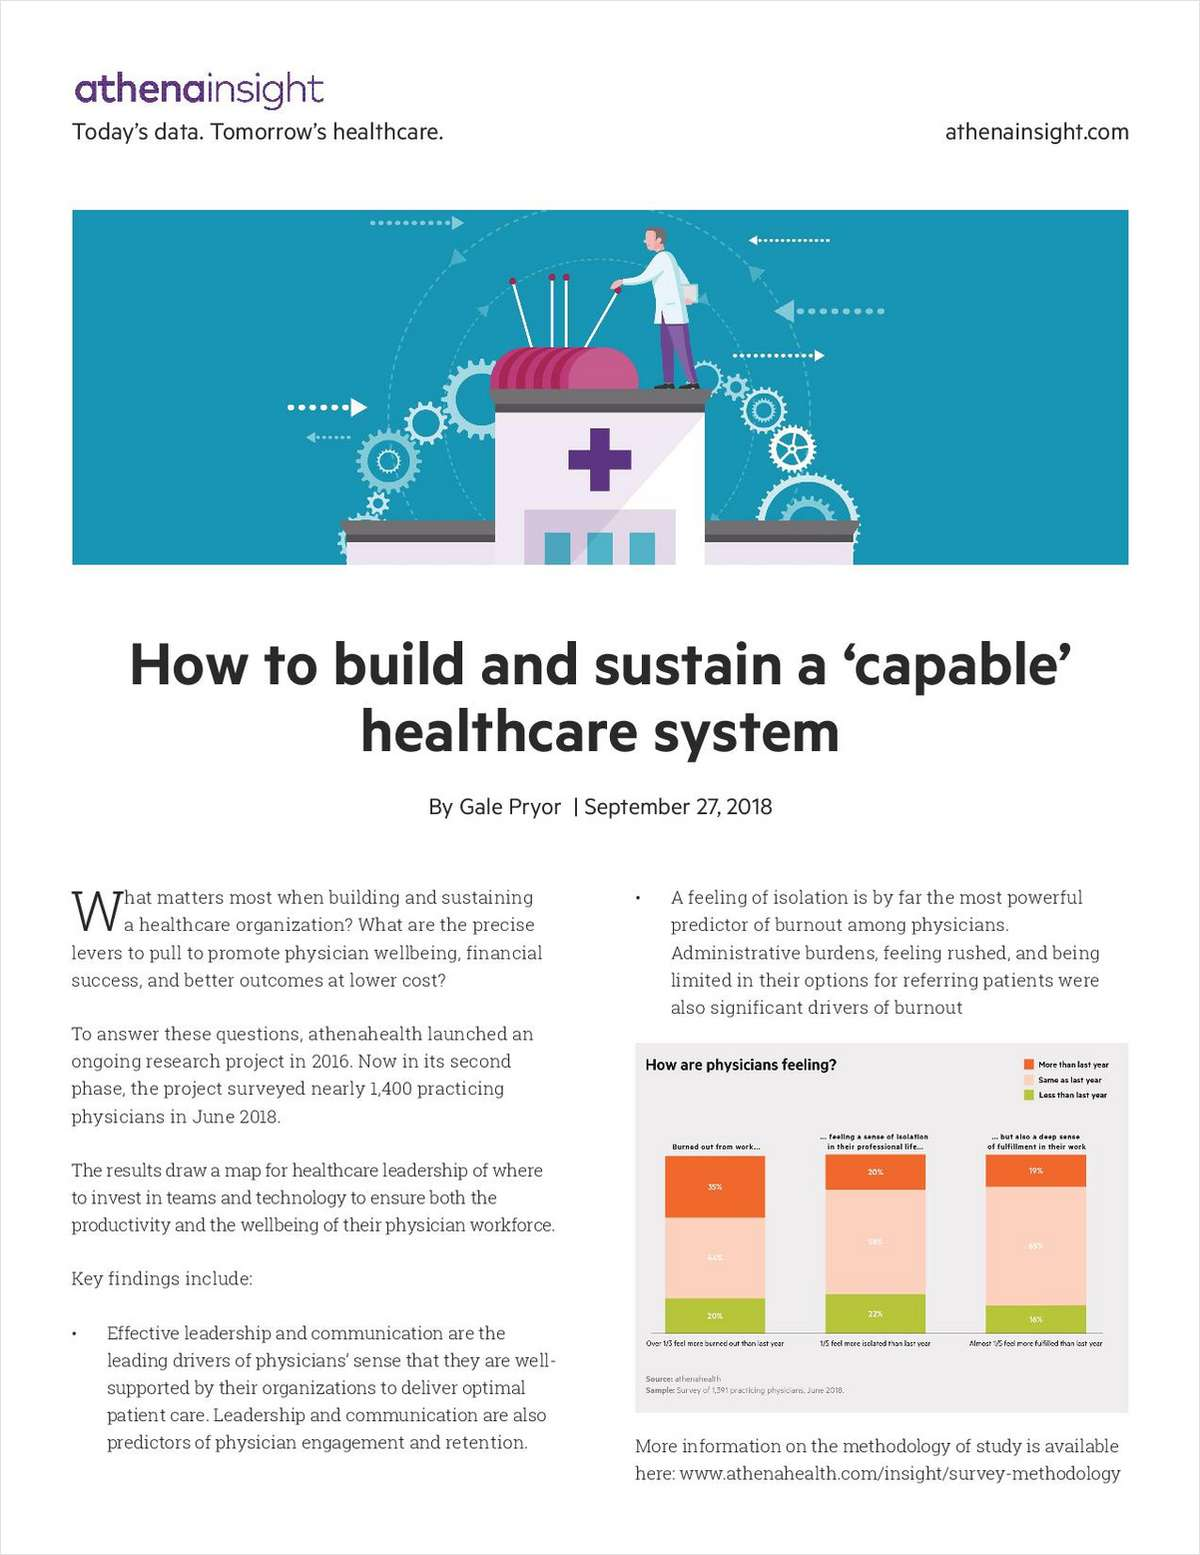 How to Build & Sustain a 'Capable' Healthcare System